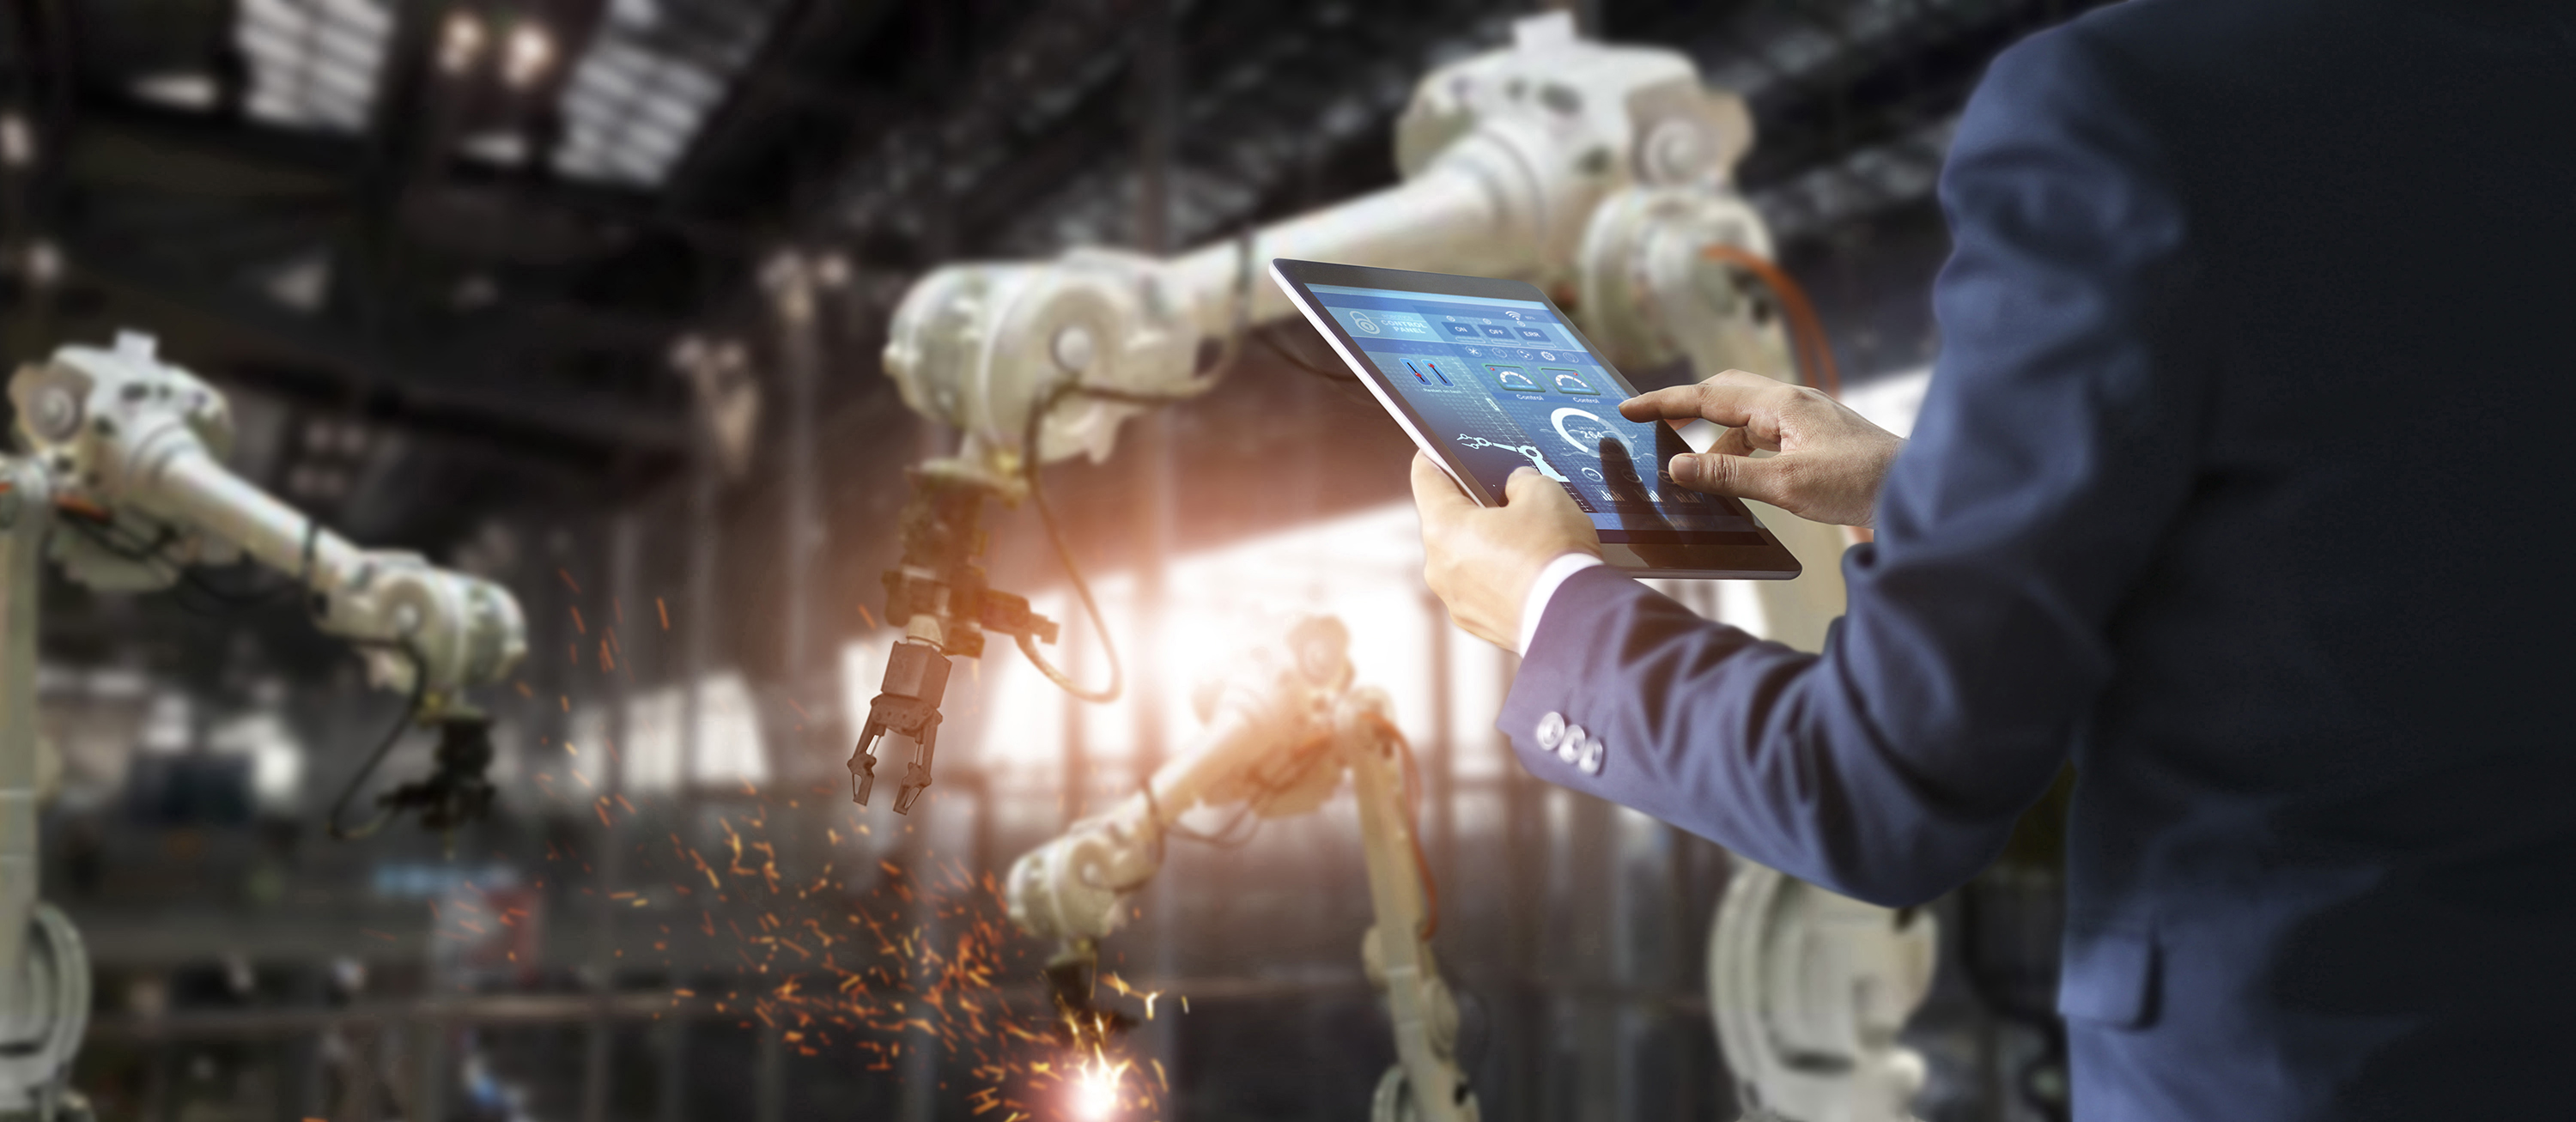 IT manager uses iPad to control robots in a manufacturing setting